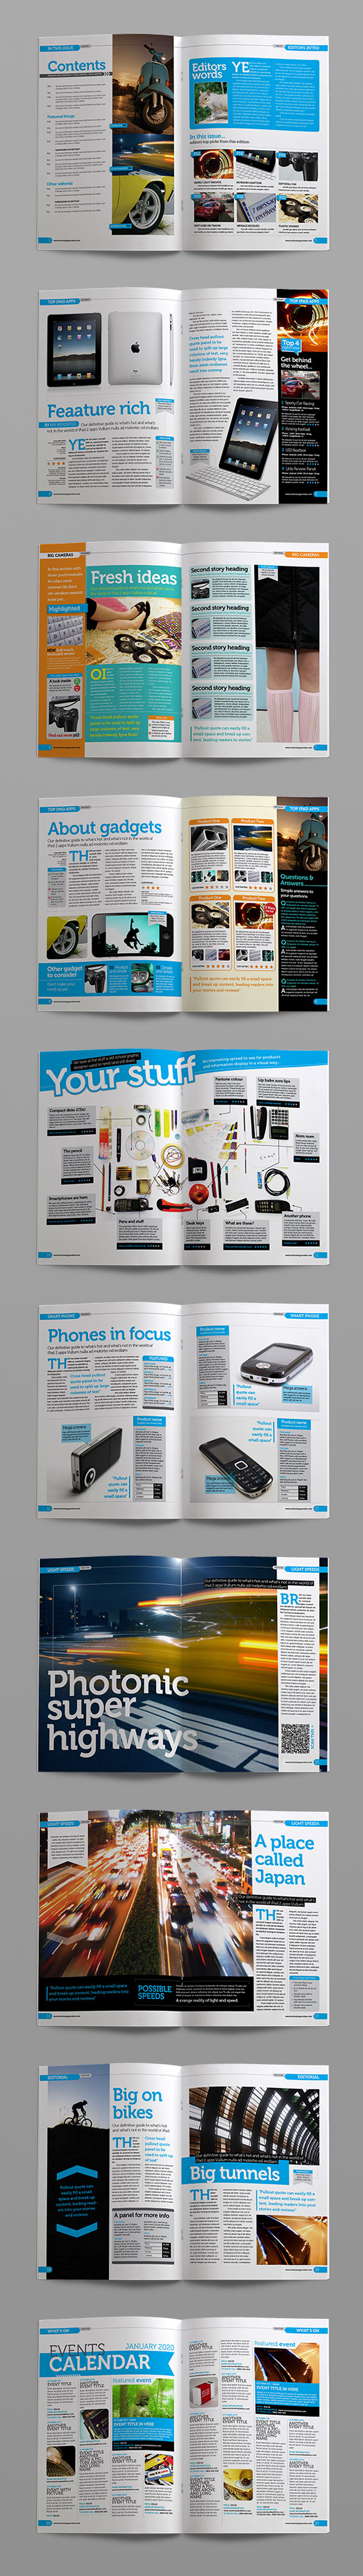 InDesign Tech Review magazine template page previews